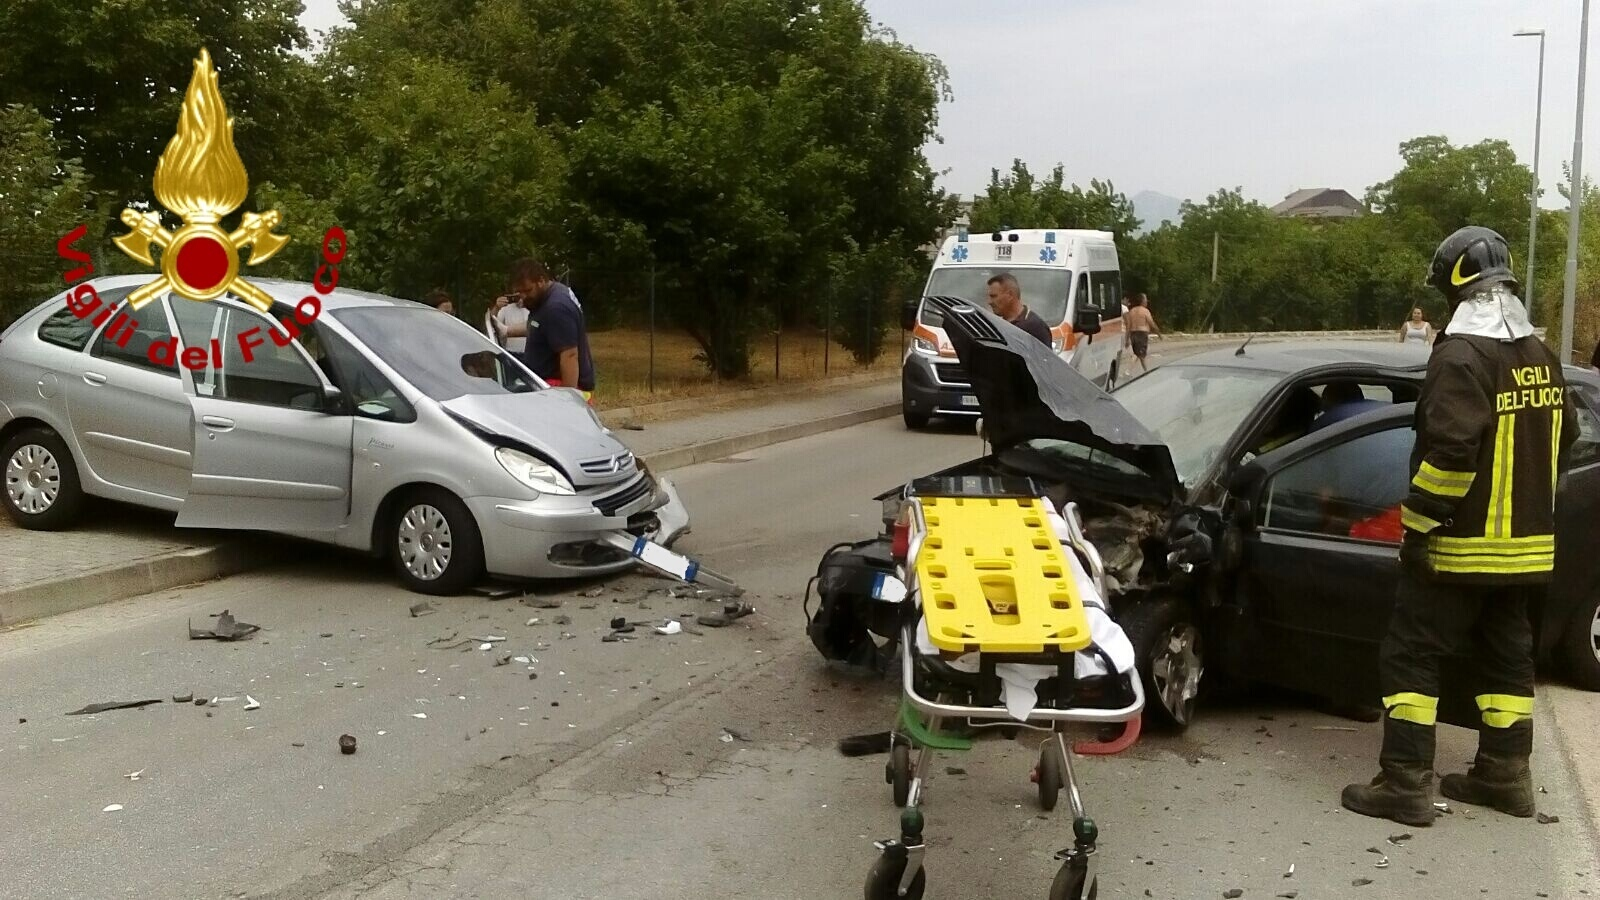 INCIDENTE A QUATTROGRANE,UN UOMO E' GRAVE.